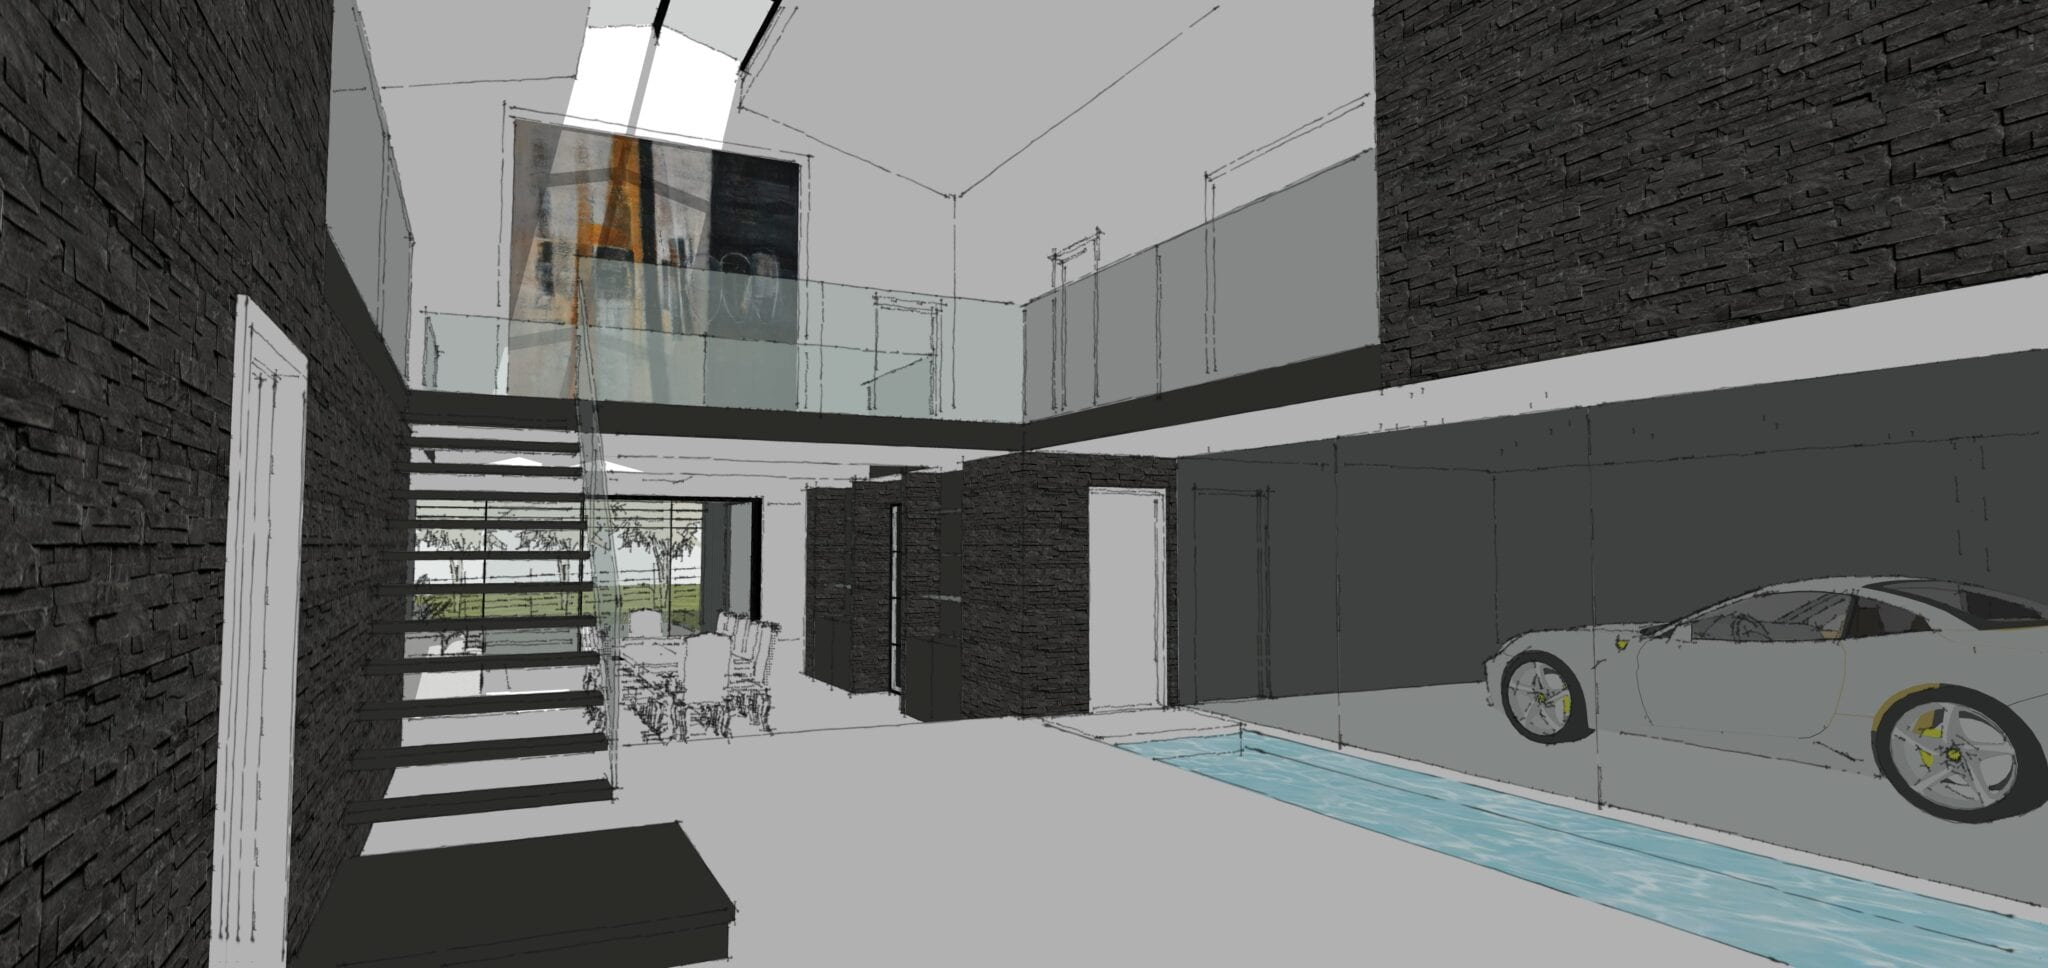 Planning Permission Granted for Industrial Inspired Barn Conversion…